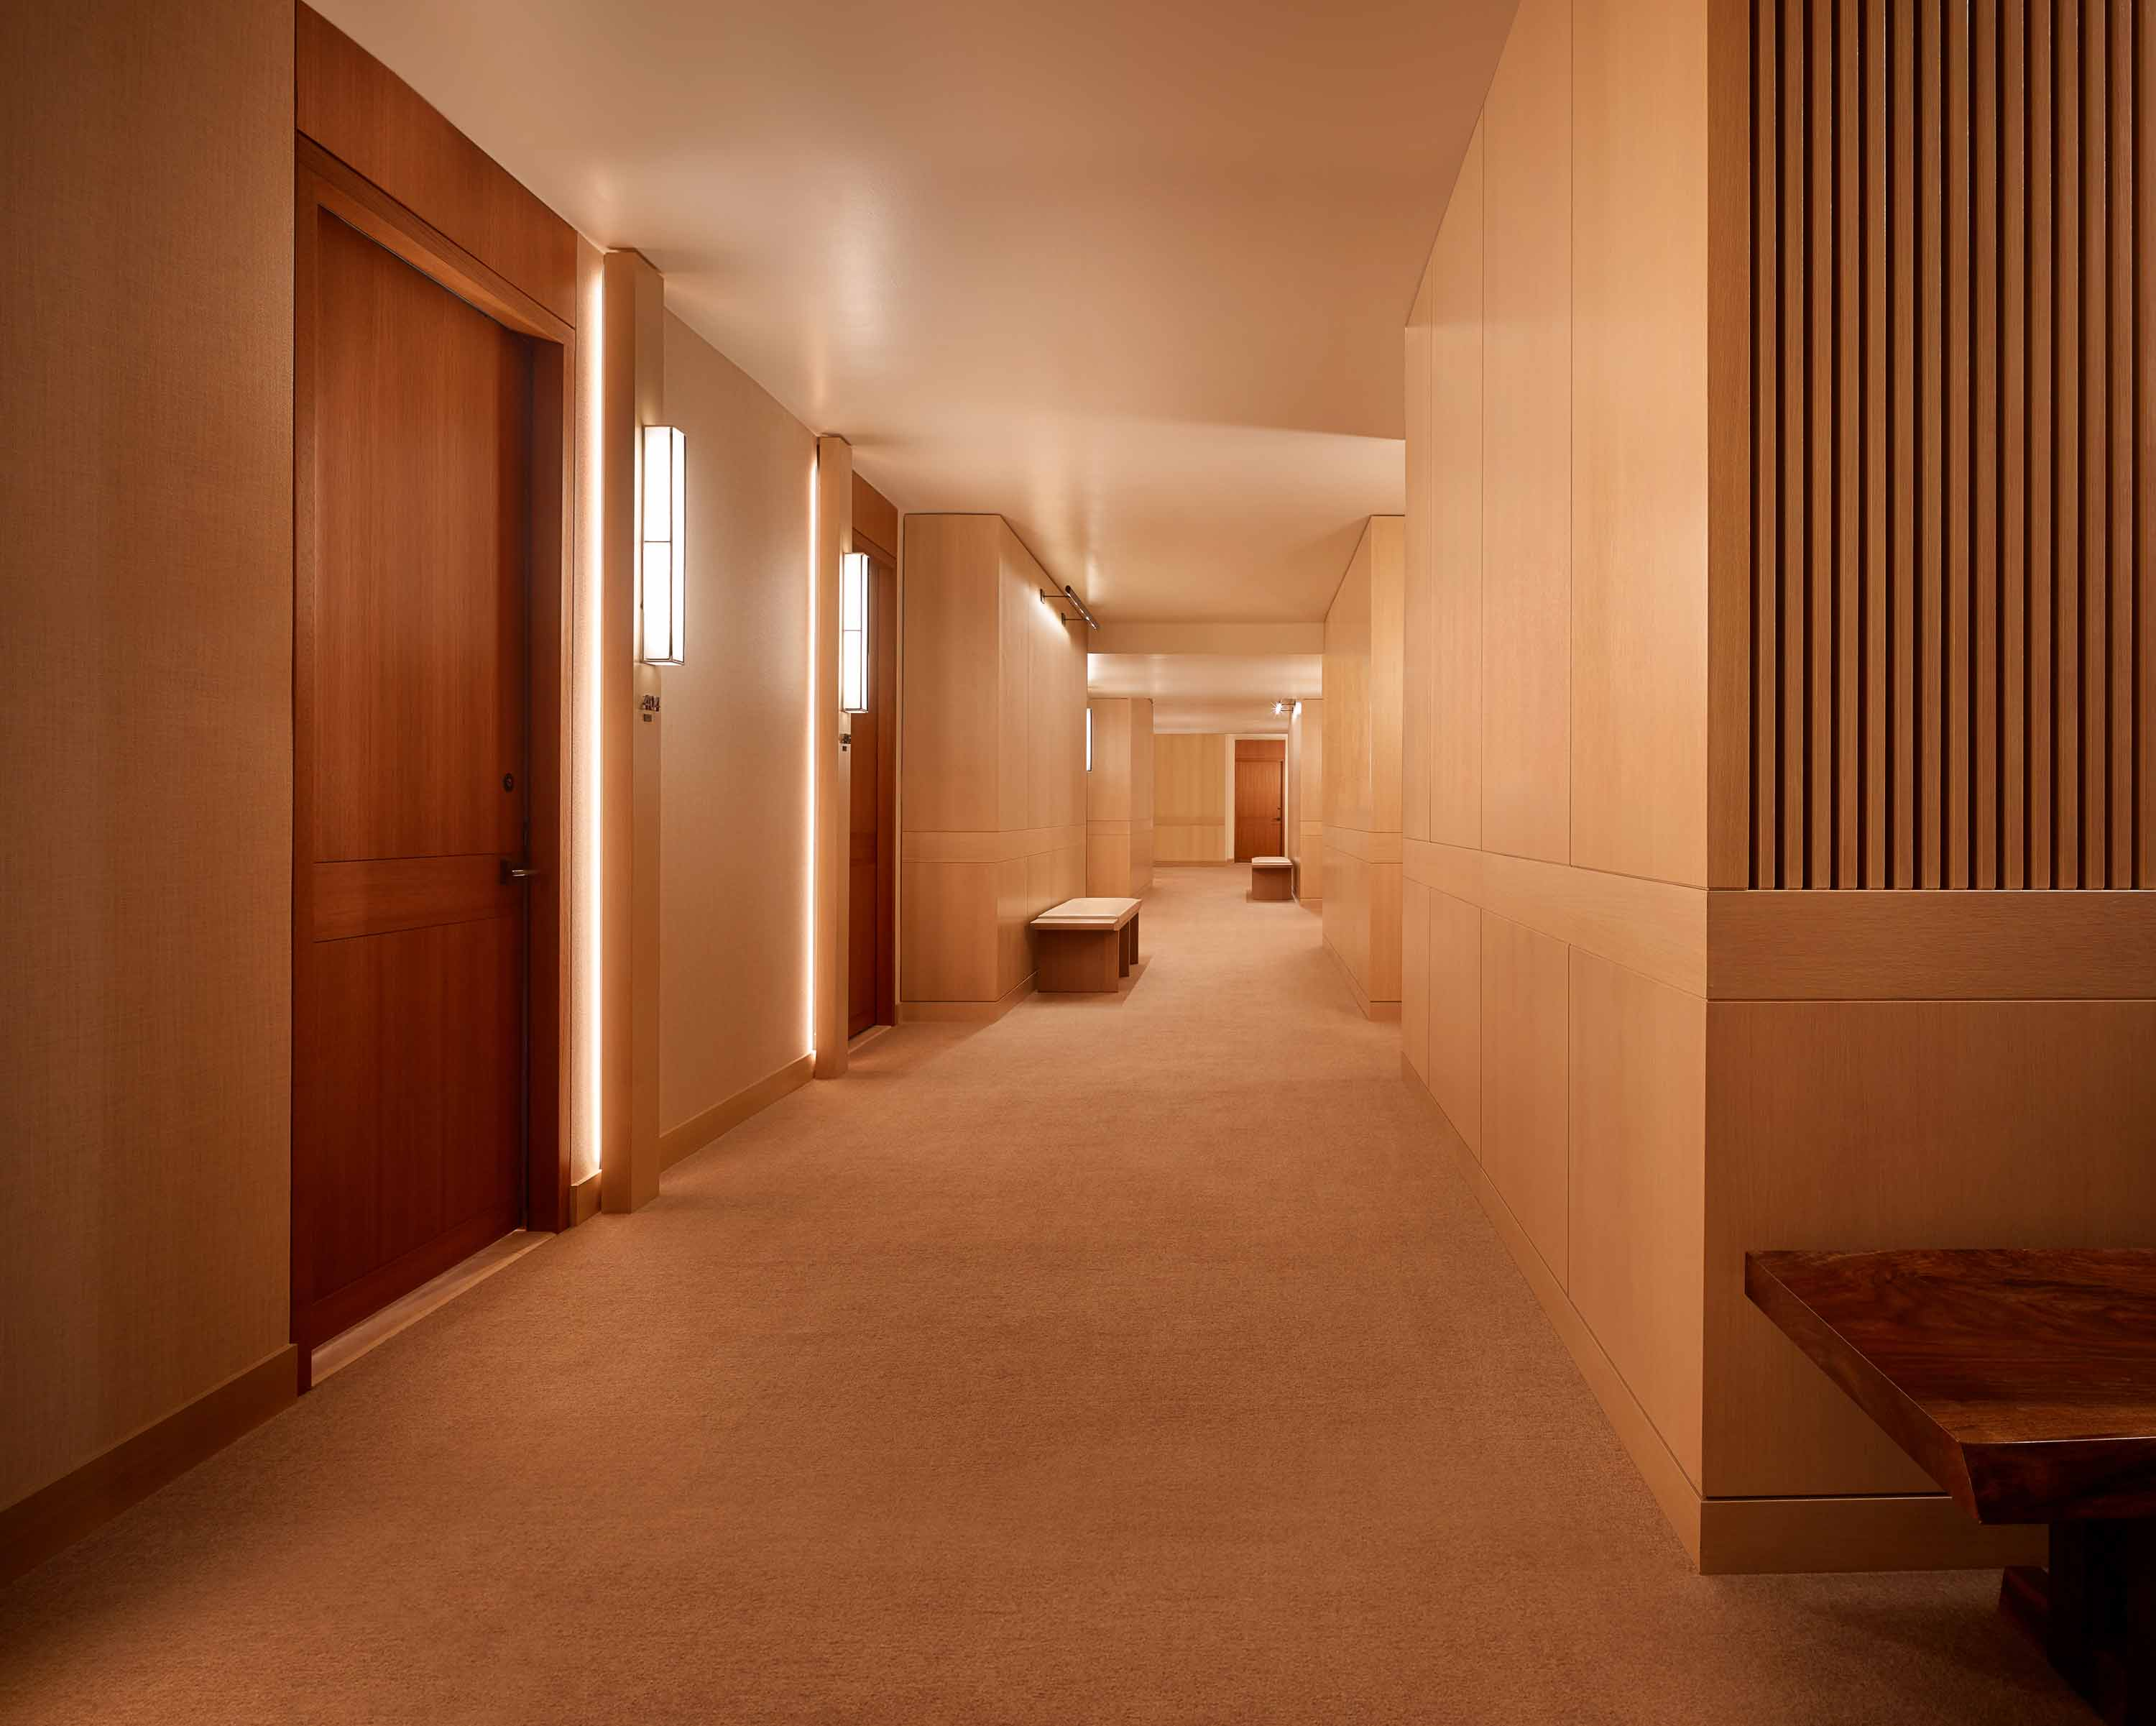 guest corridor with doors to rooms and suites